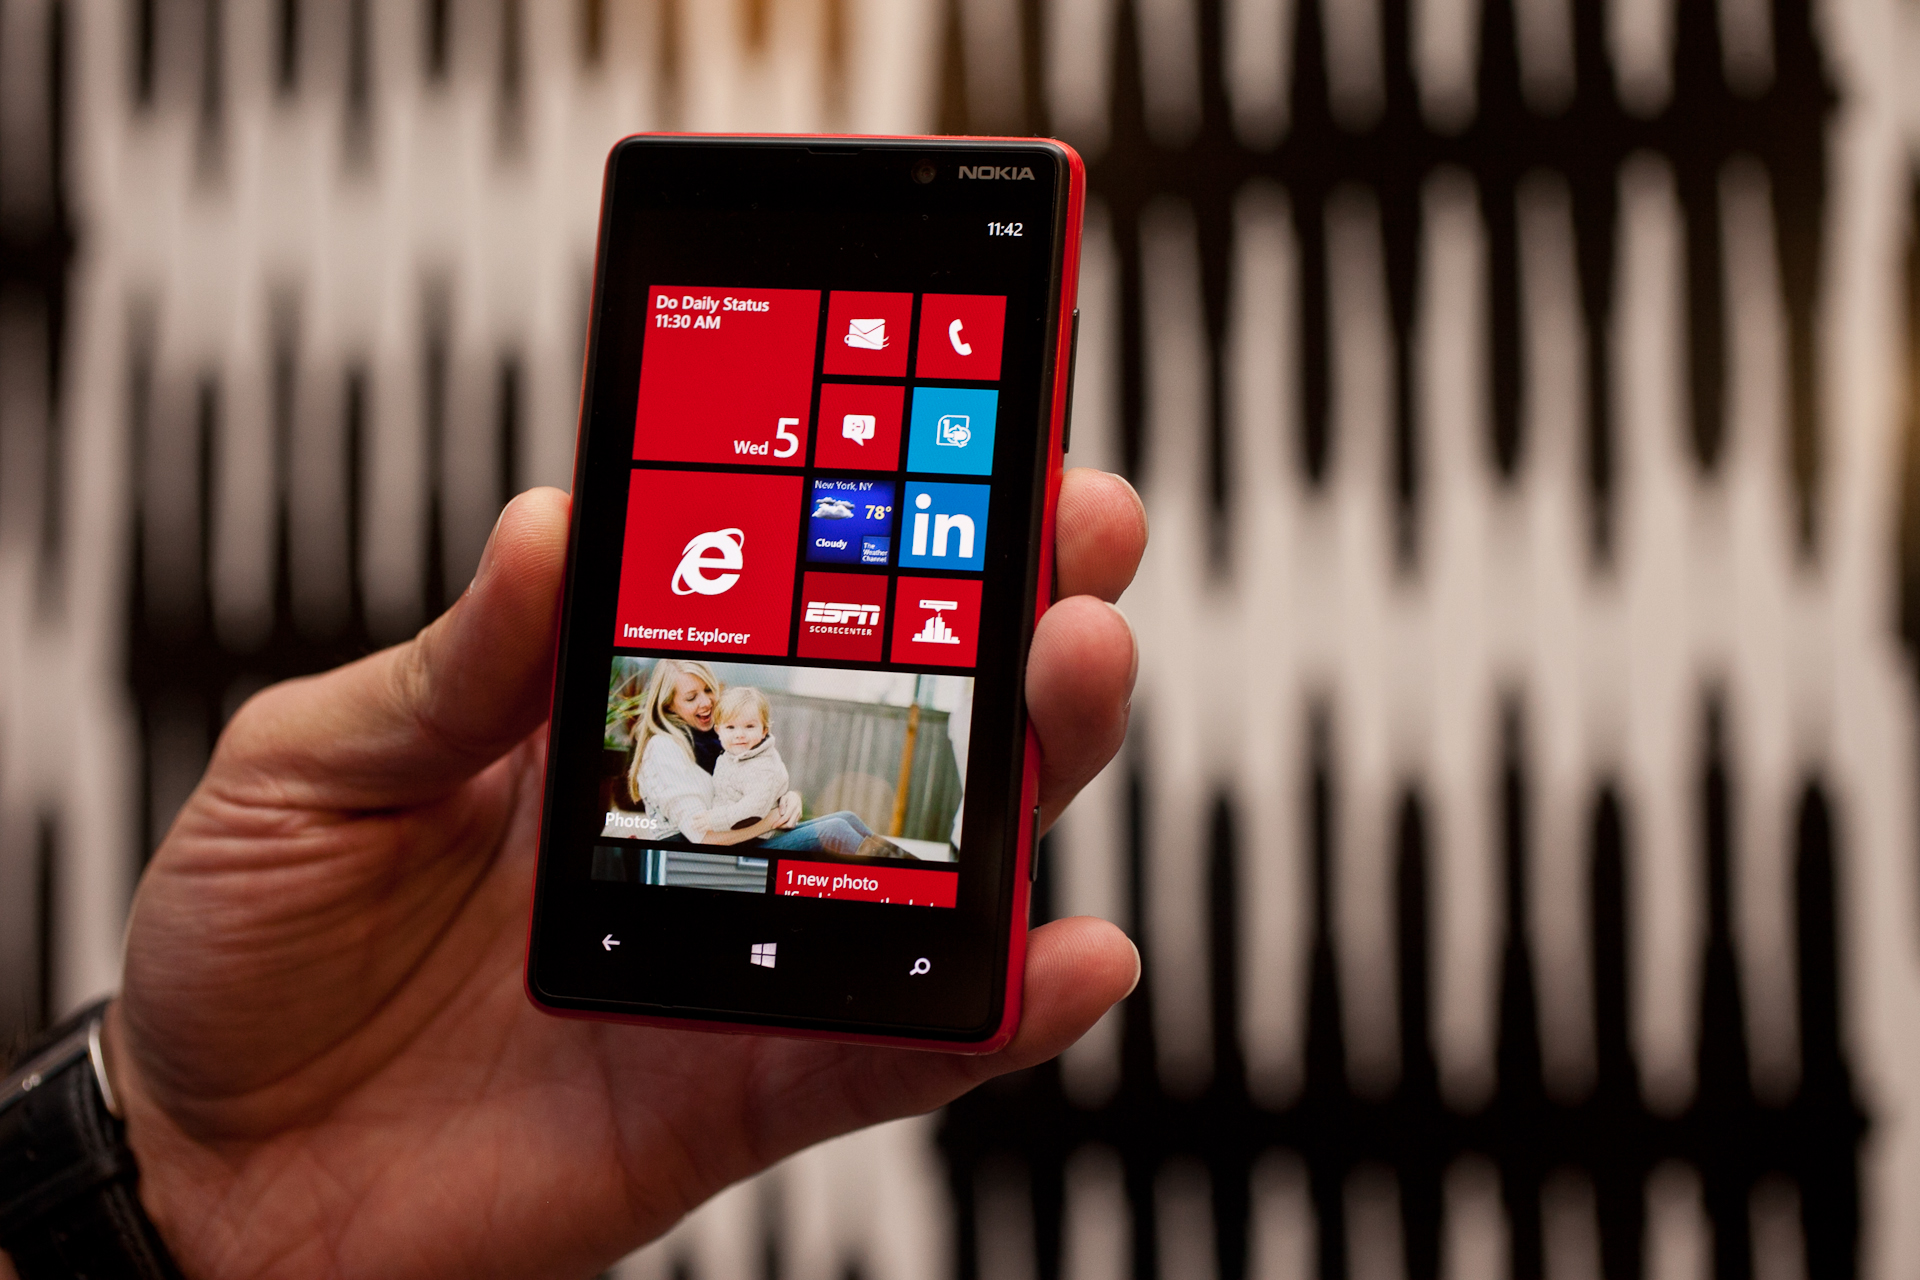 AT&T to sell Nokia's first Windows 8 phones - CBS News